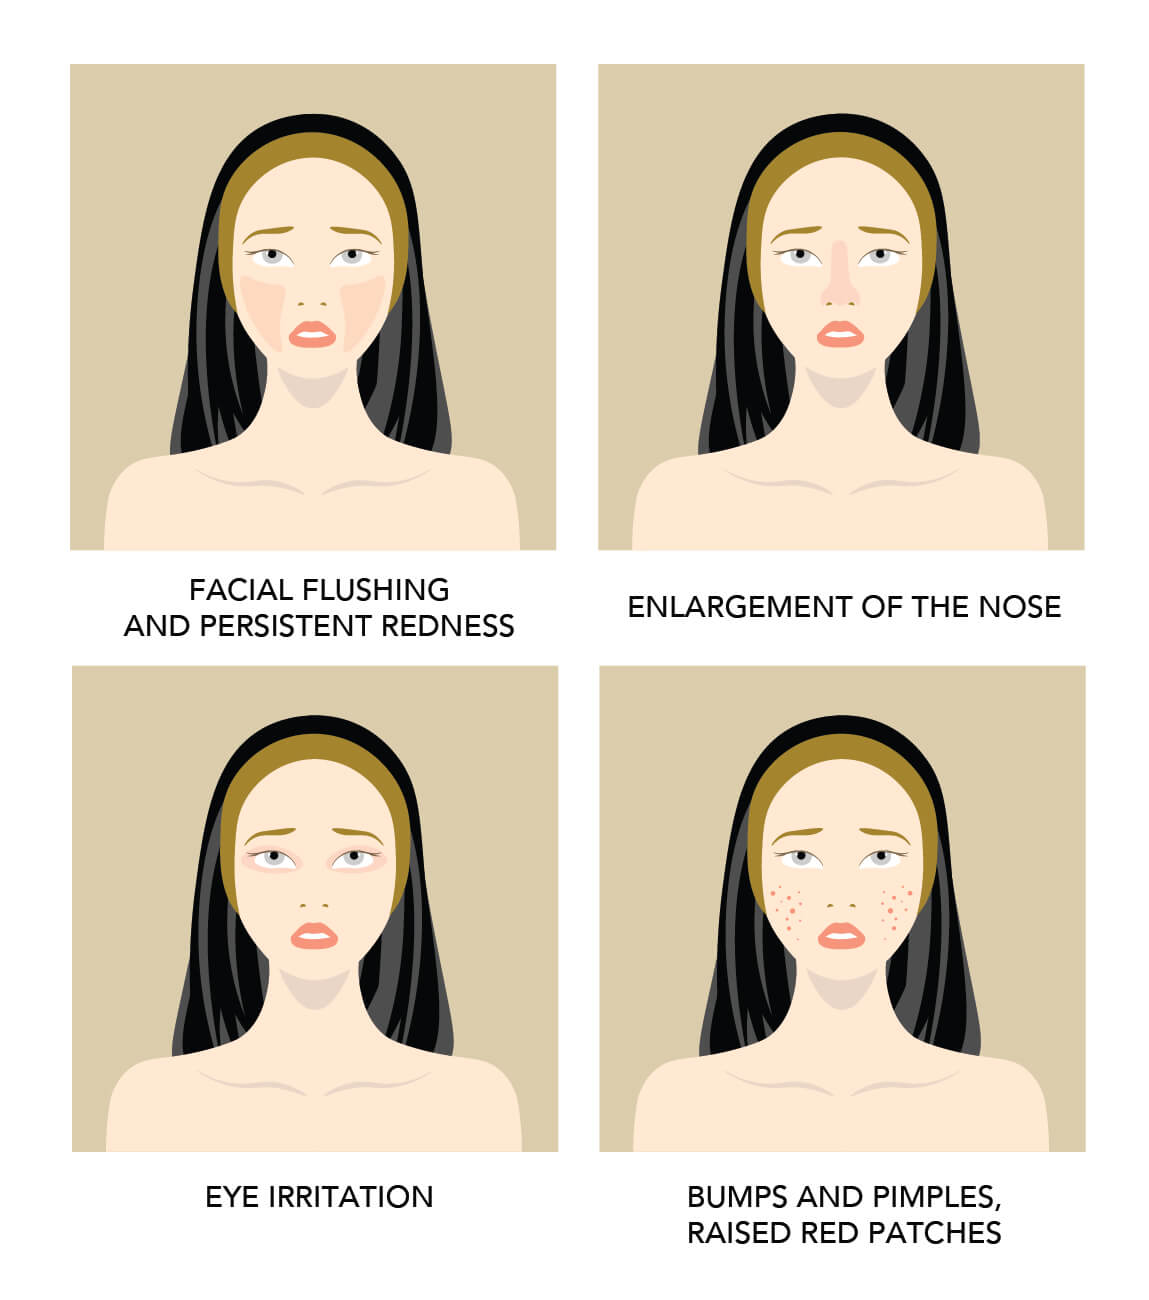 rosacea in graphics